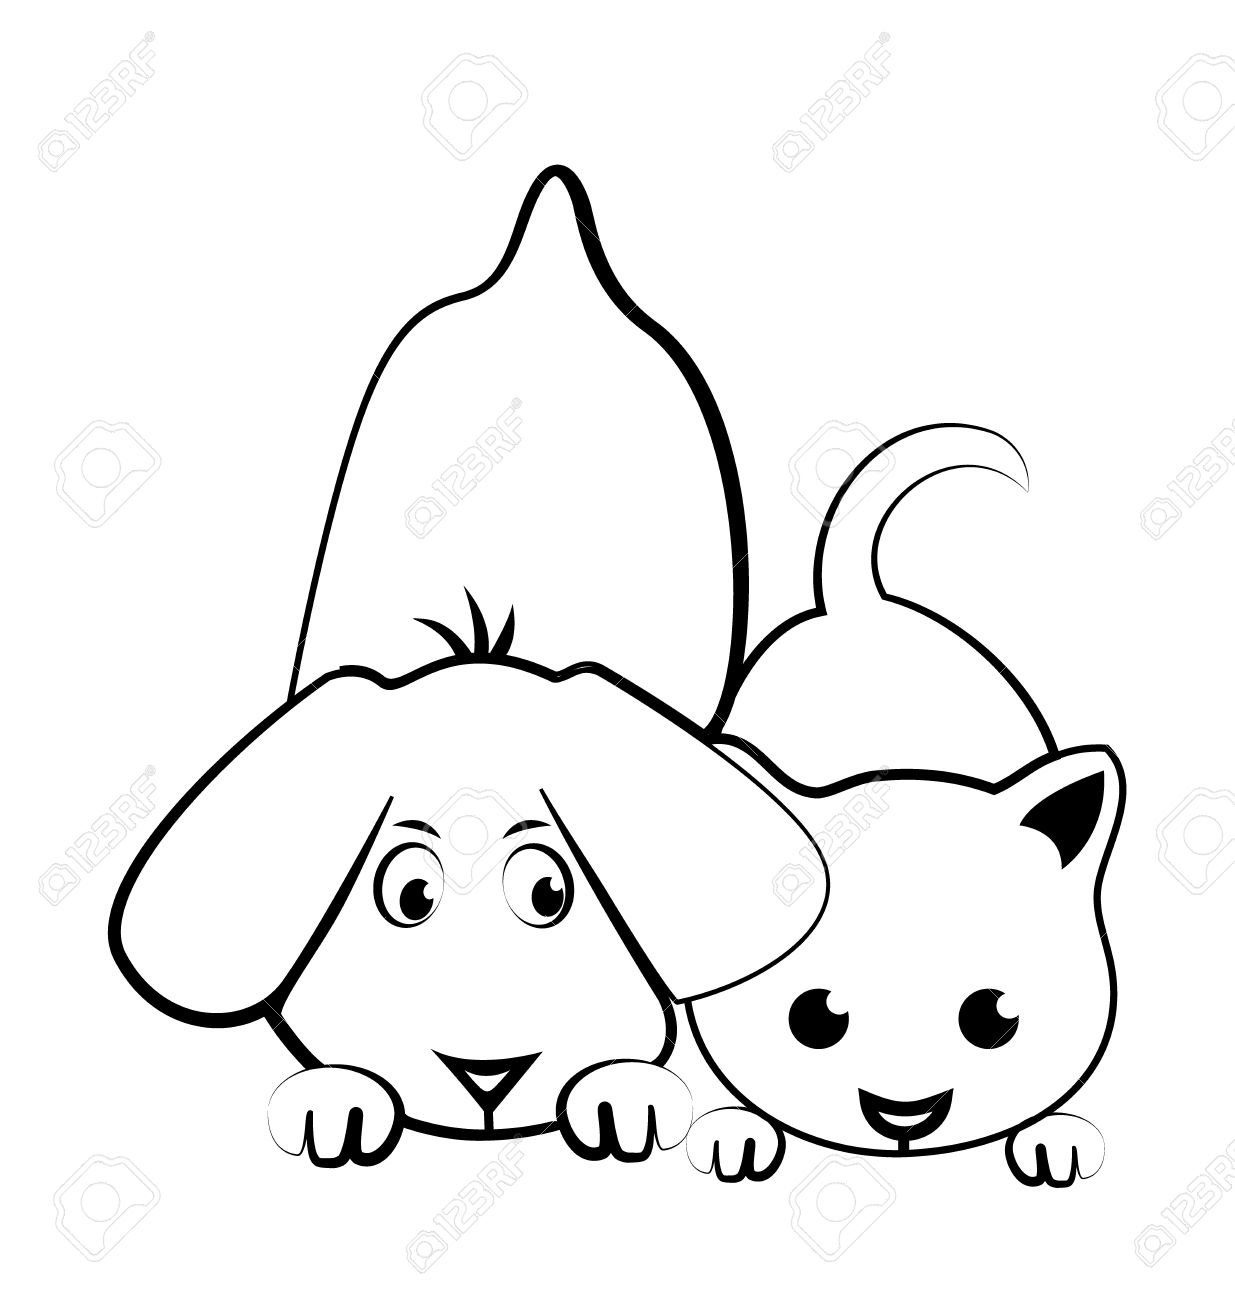 1235x1300 Dog And Cat Cartoon Silhouette Logo Vector Royalty Free Cliparts